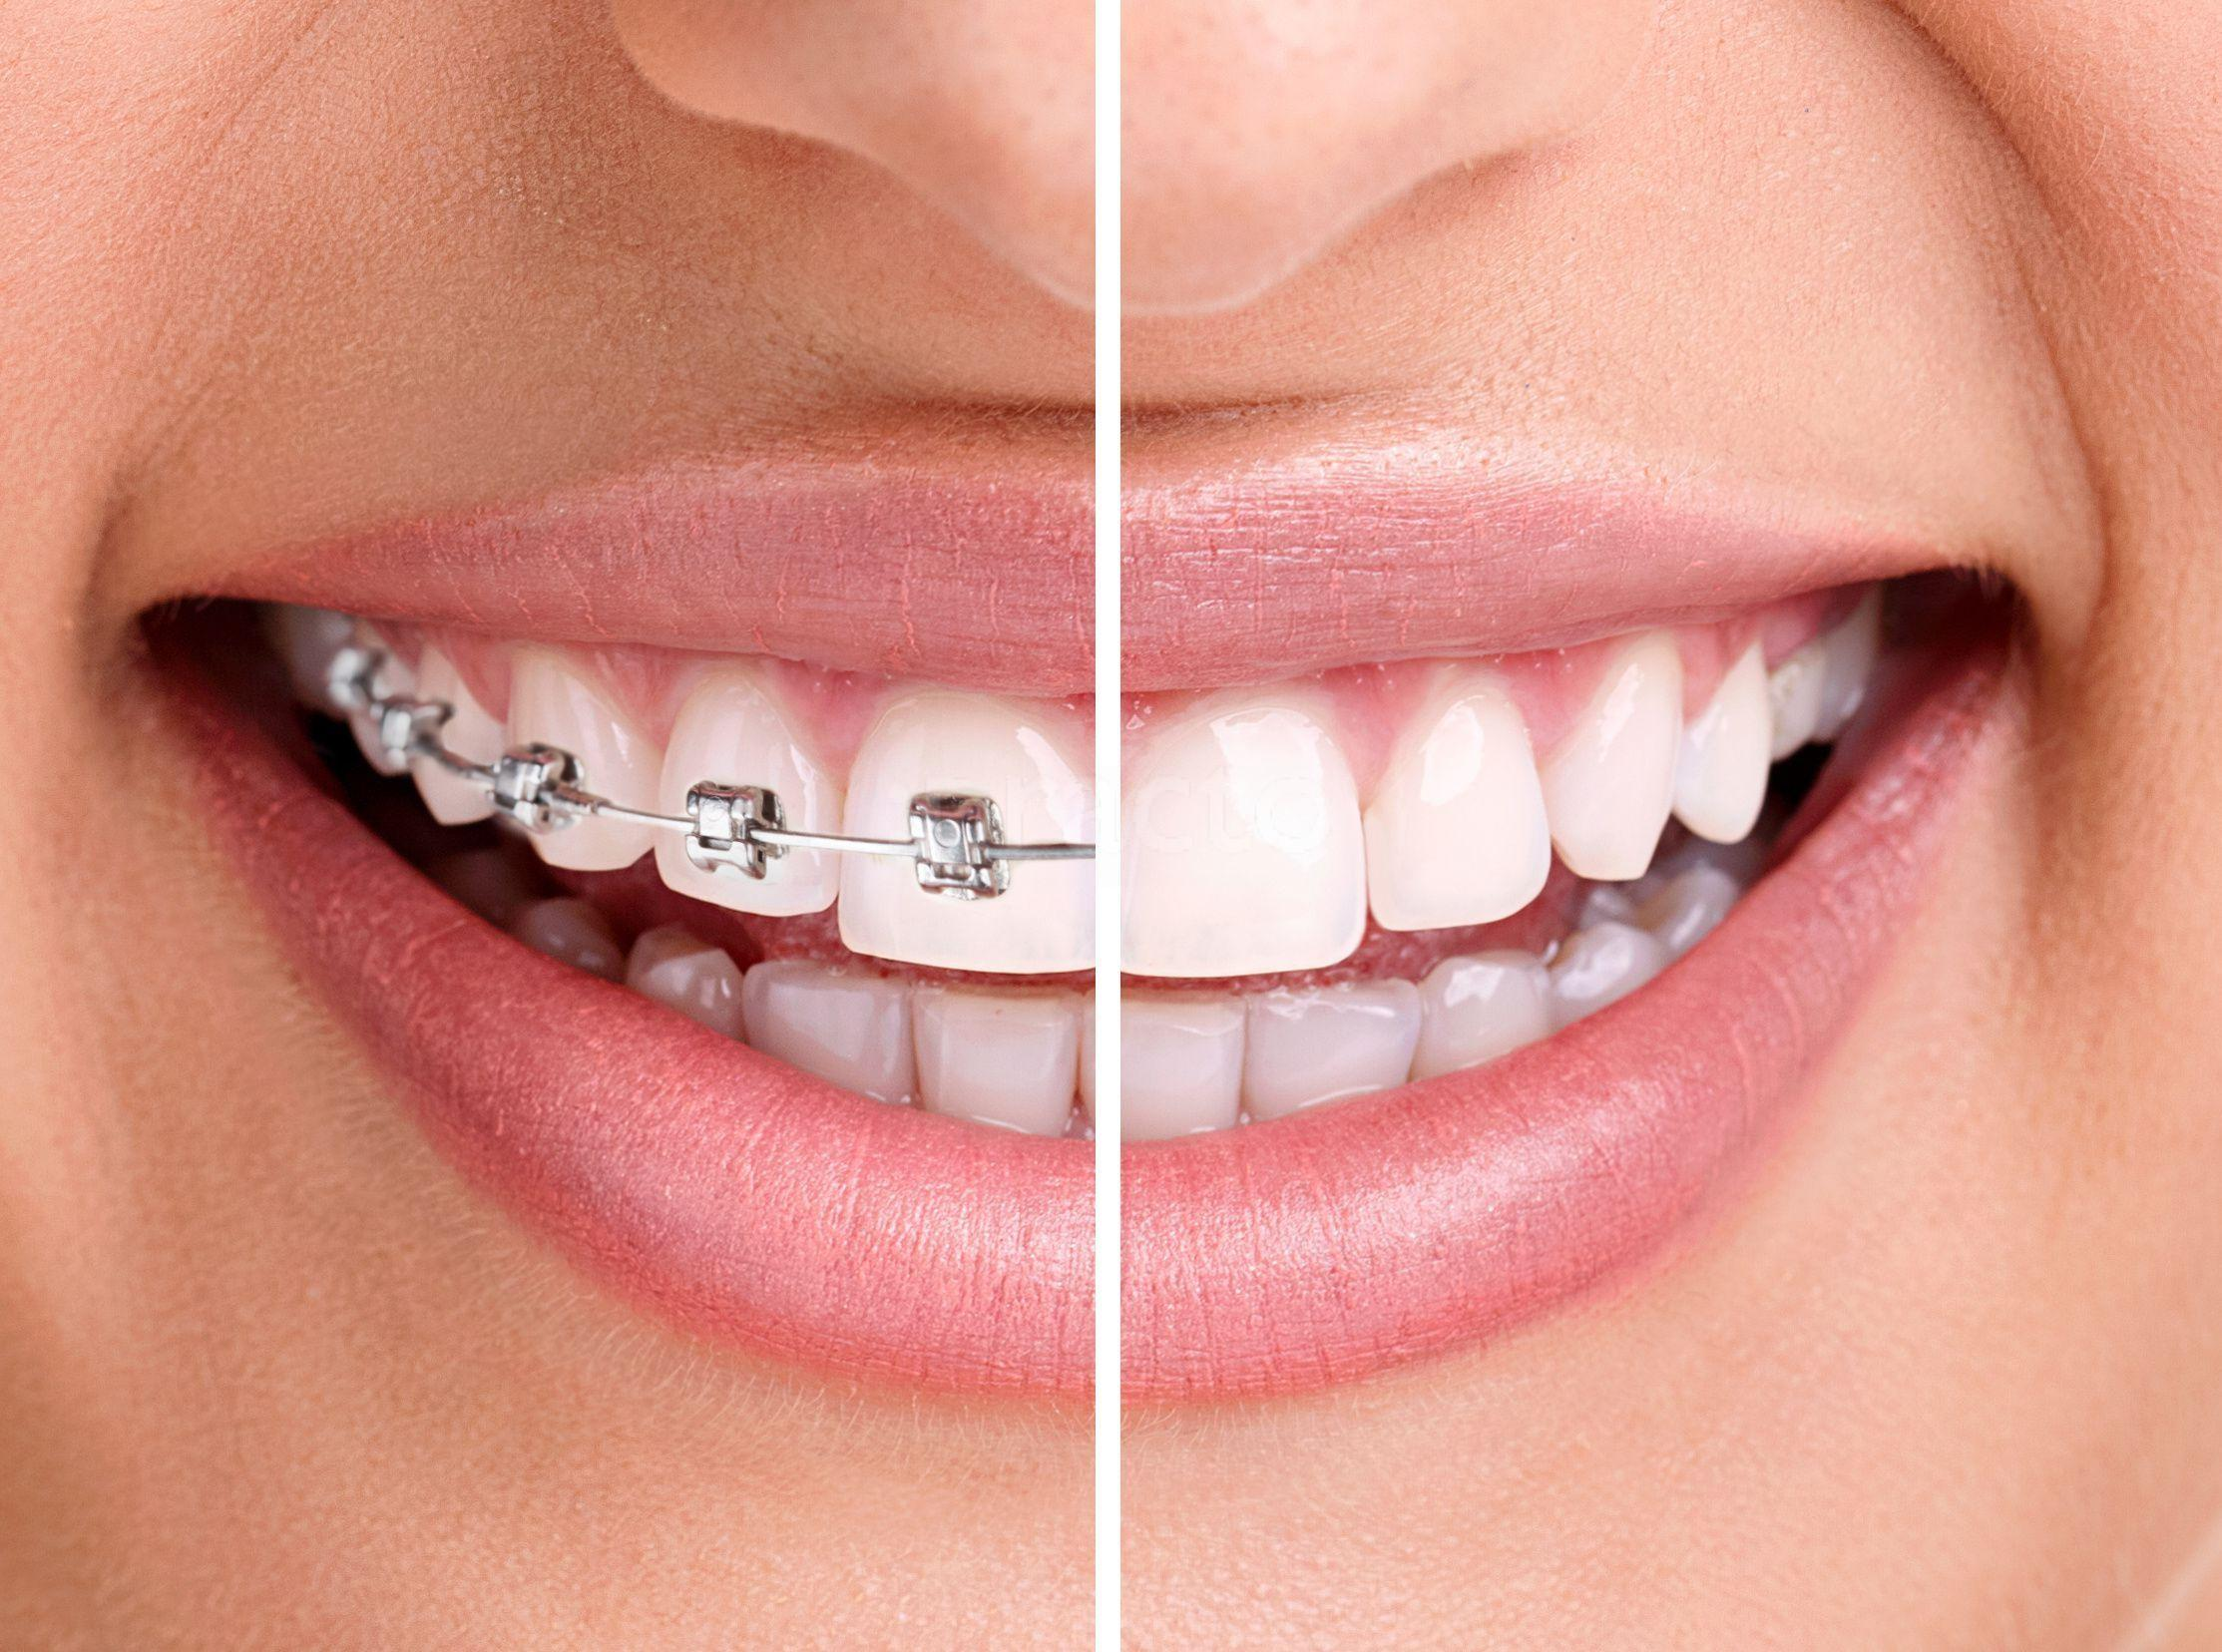 smile-architect-dental-clinic-bangalore-1483533669-586ced652e0e3.jpg